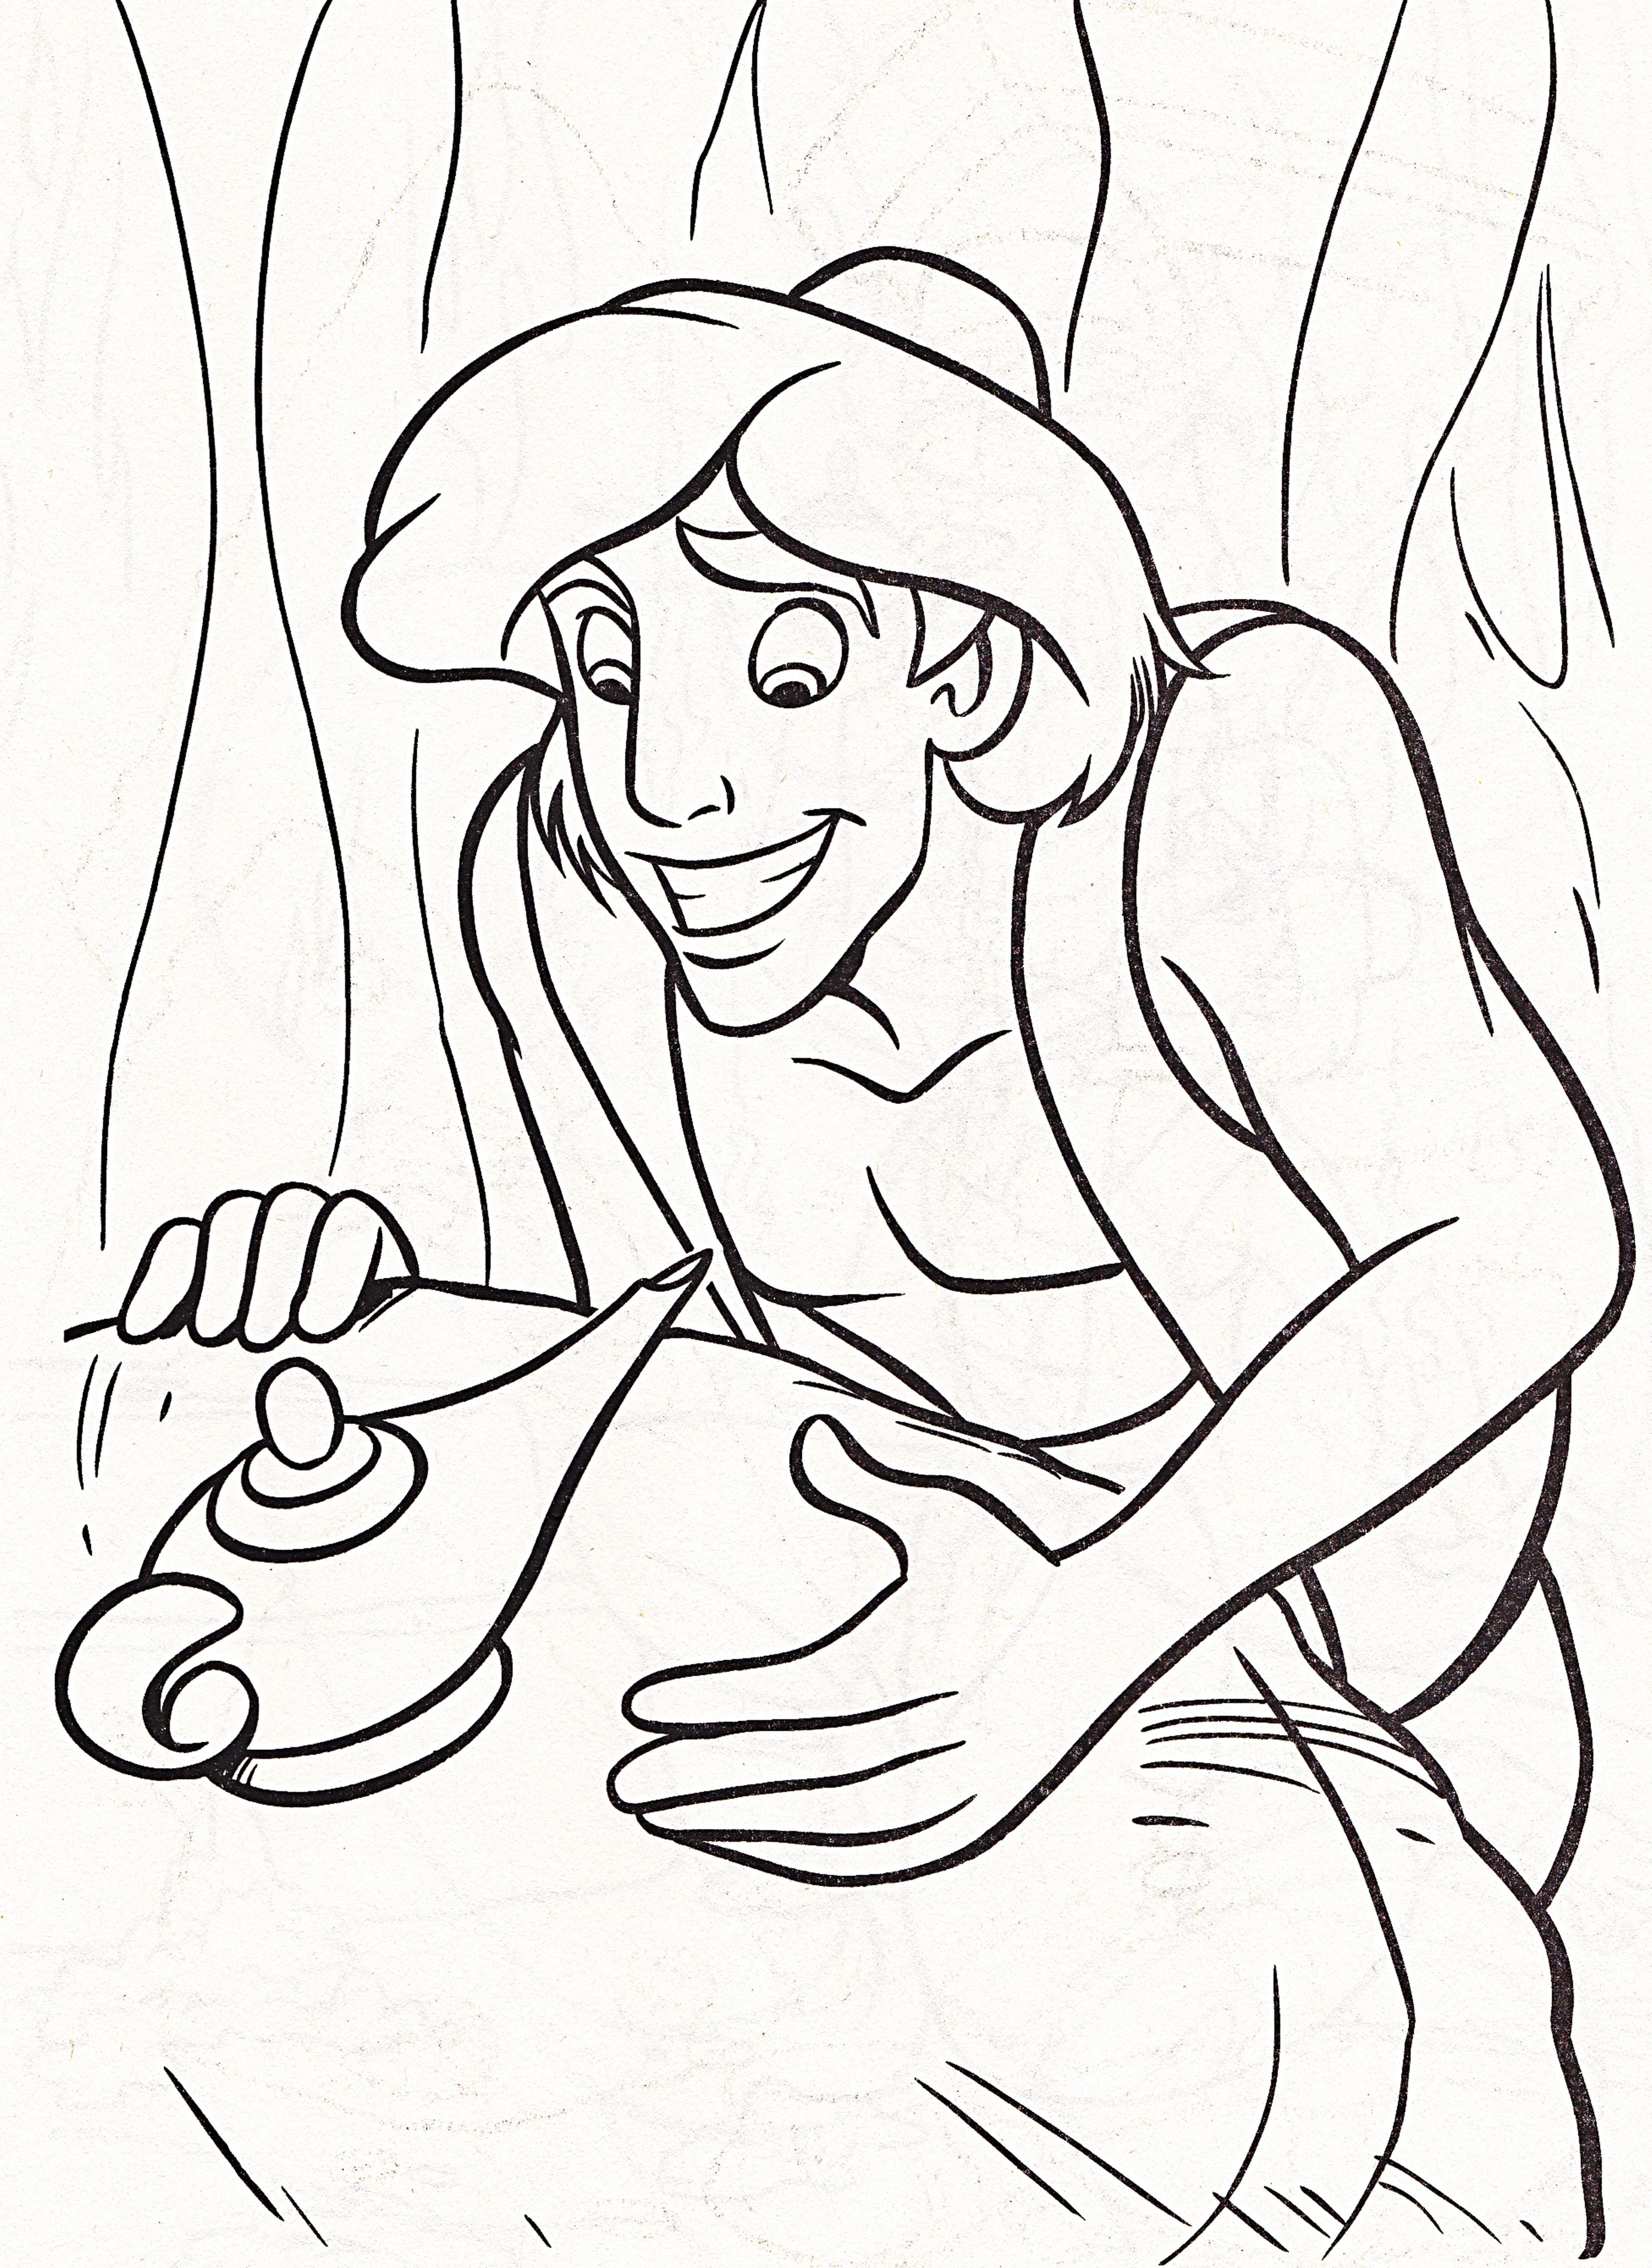 Disney Prince Coloring Pages